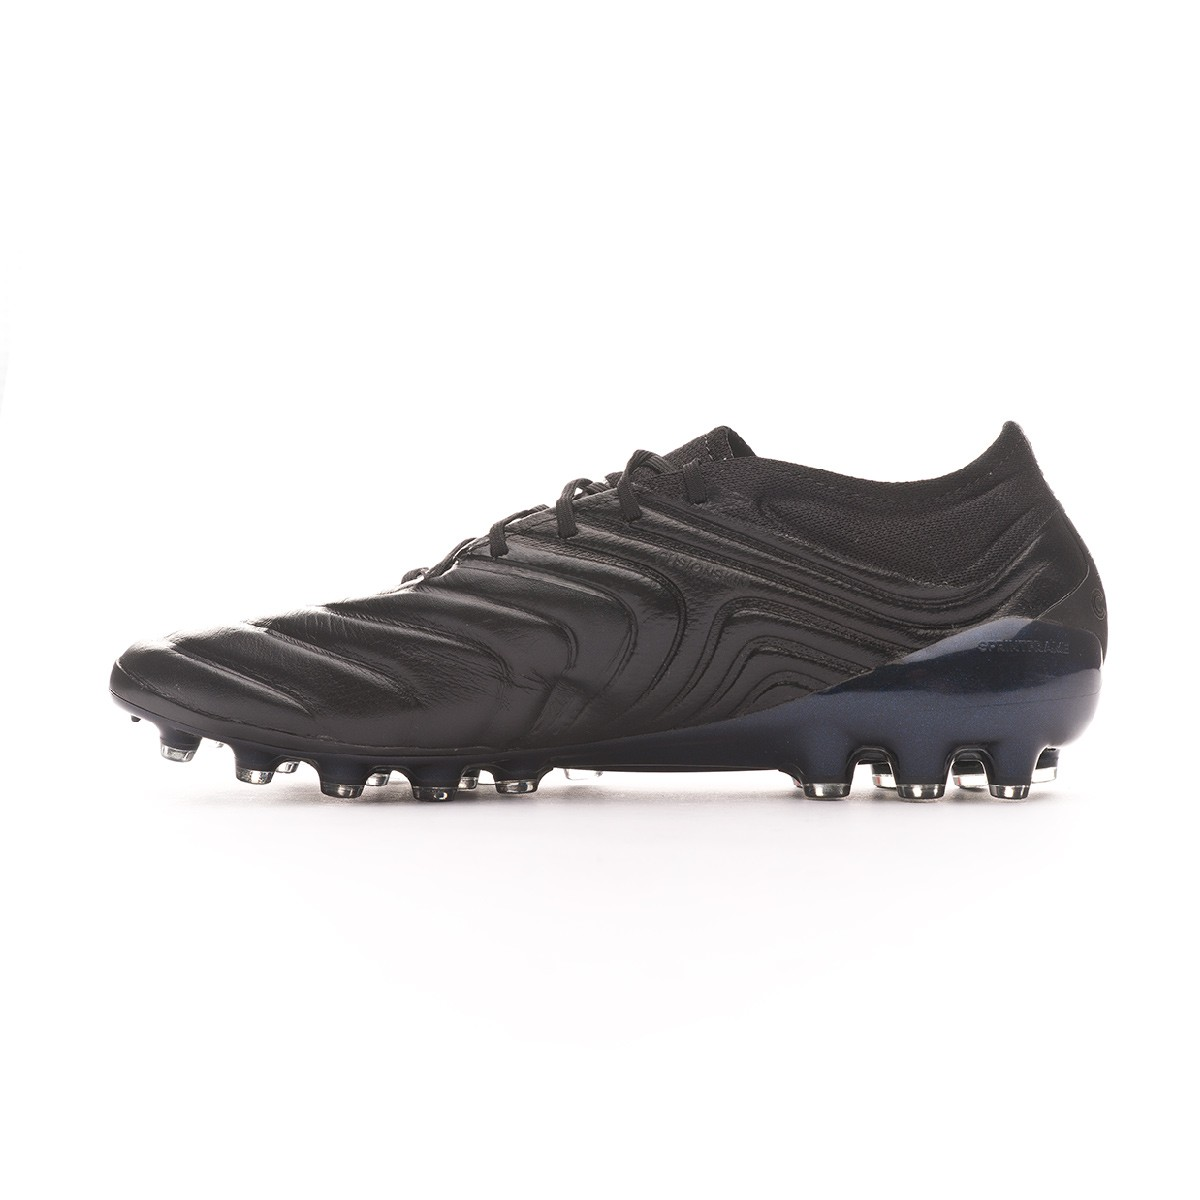 the latest 8537c 47a83 Boot adidas Copa 19.1 AG Core black - Football store Fútbol